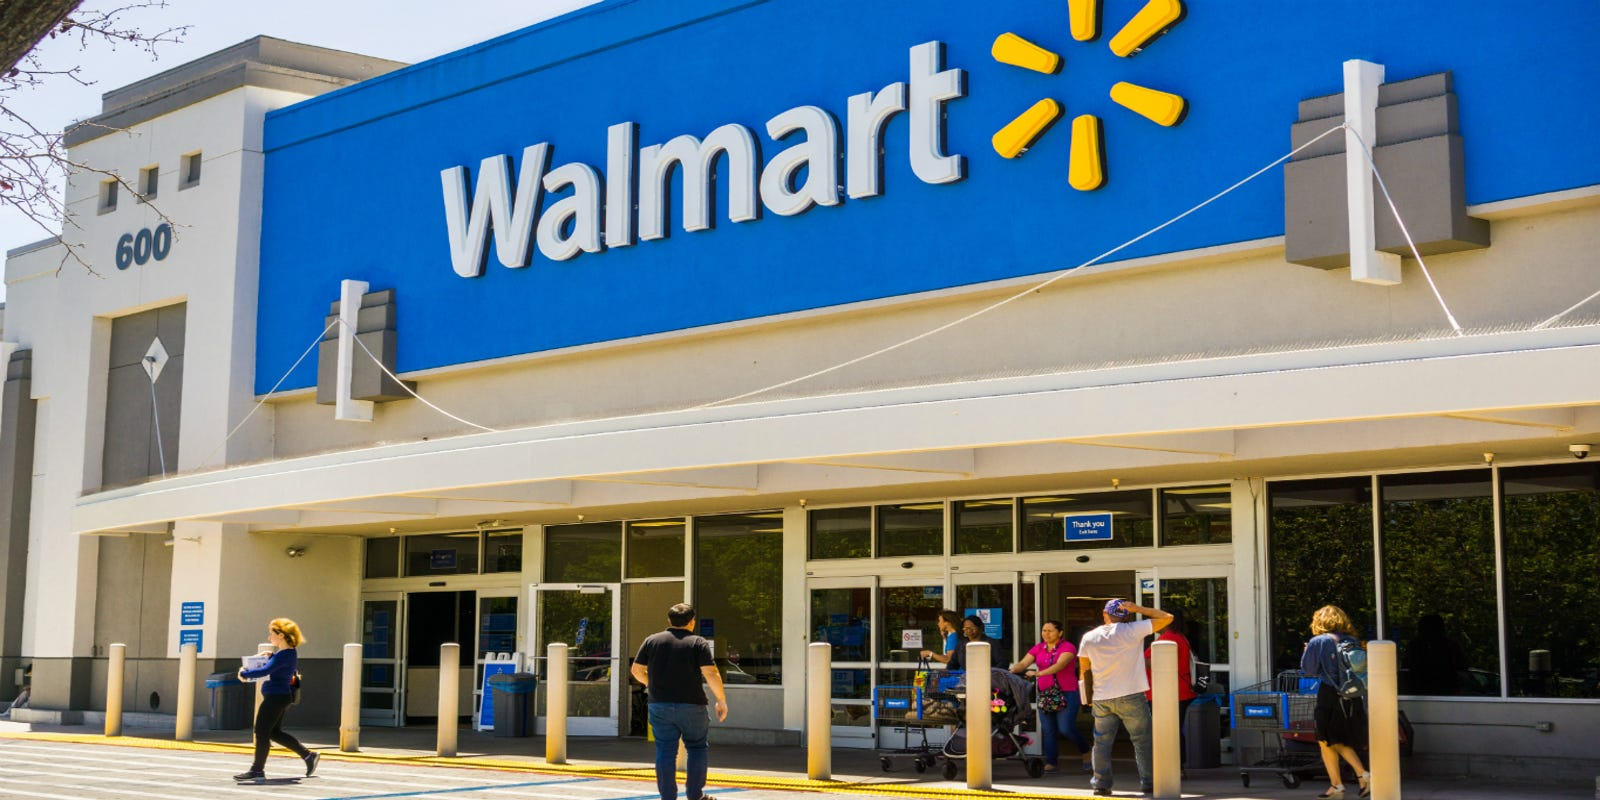 Walmart wages: What do Walmart managers and hourly workers make?